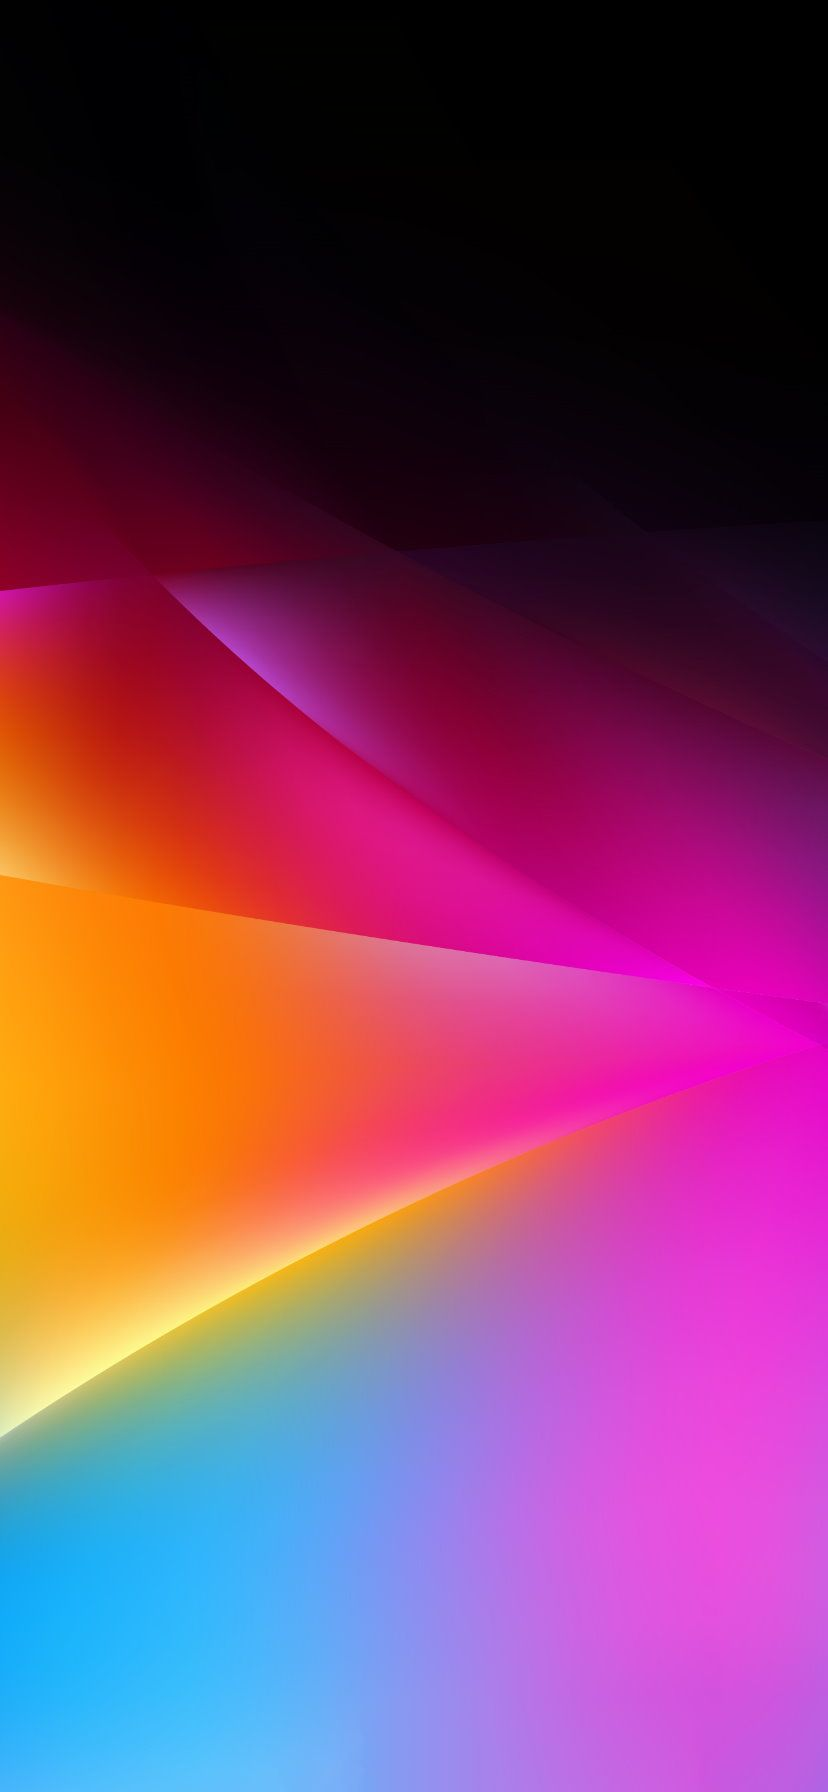 Wallpapers Iphone Xr Rainbow Colors In 2019 Iphone Wallpaper